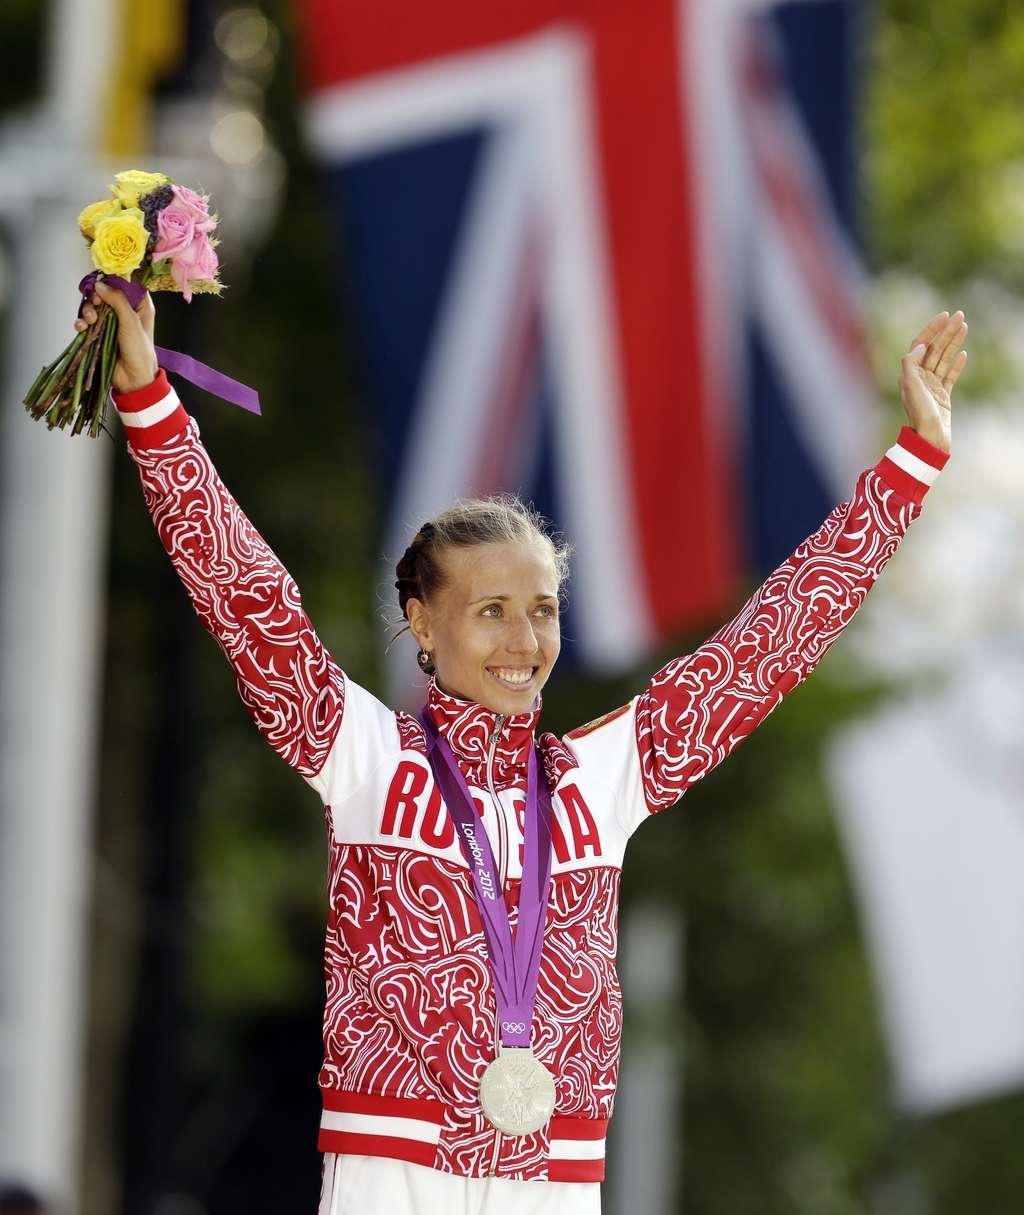 FILE - In this Saturday, Aug. 11, 2012 file photo, silver medalist Olga Kaniskina of Russia reacts during a ceremony after the women's ...